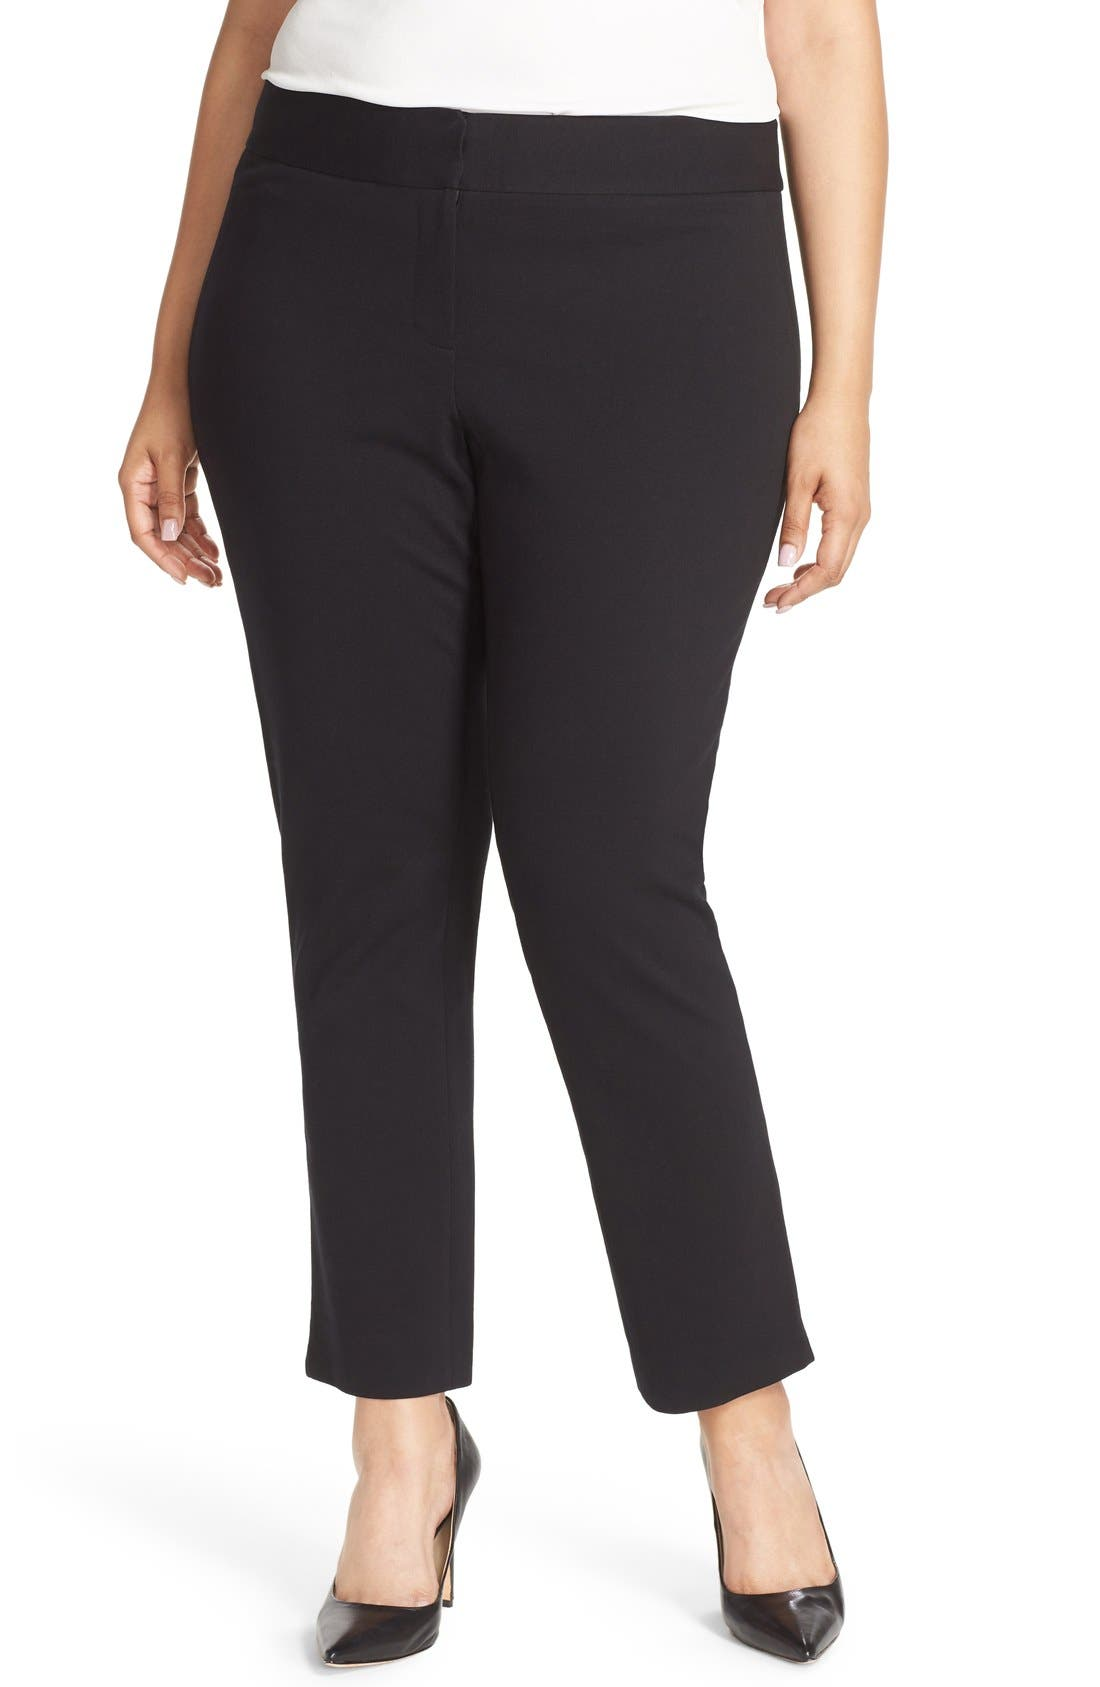 Alternate Image 1 Selected - Vince Camuto Front Zip Slim Ankle Pants (Plus Size)